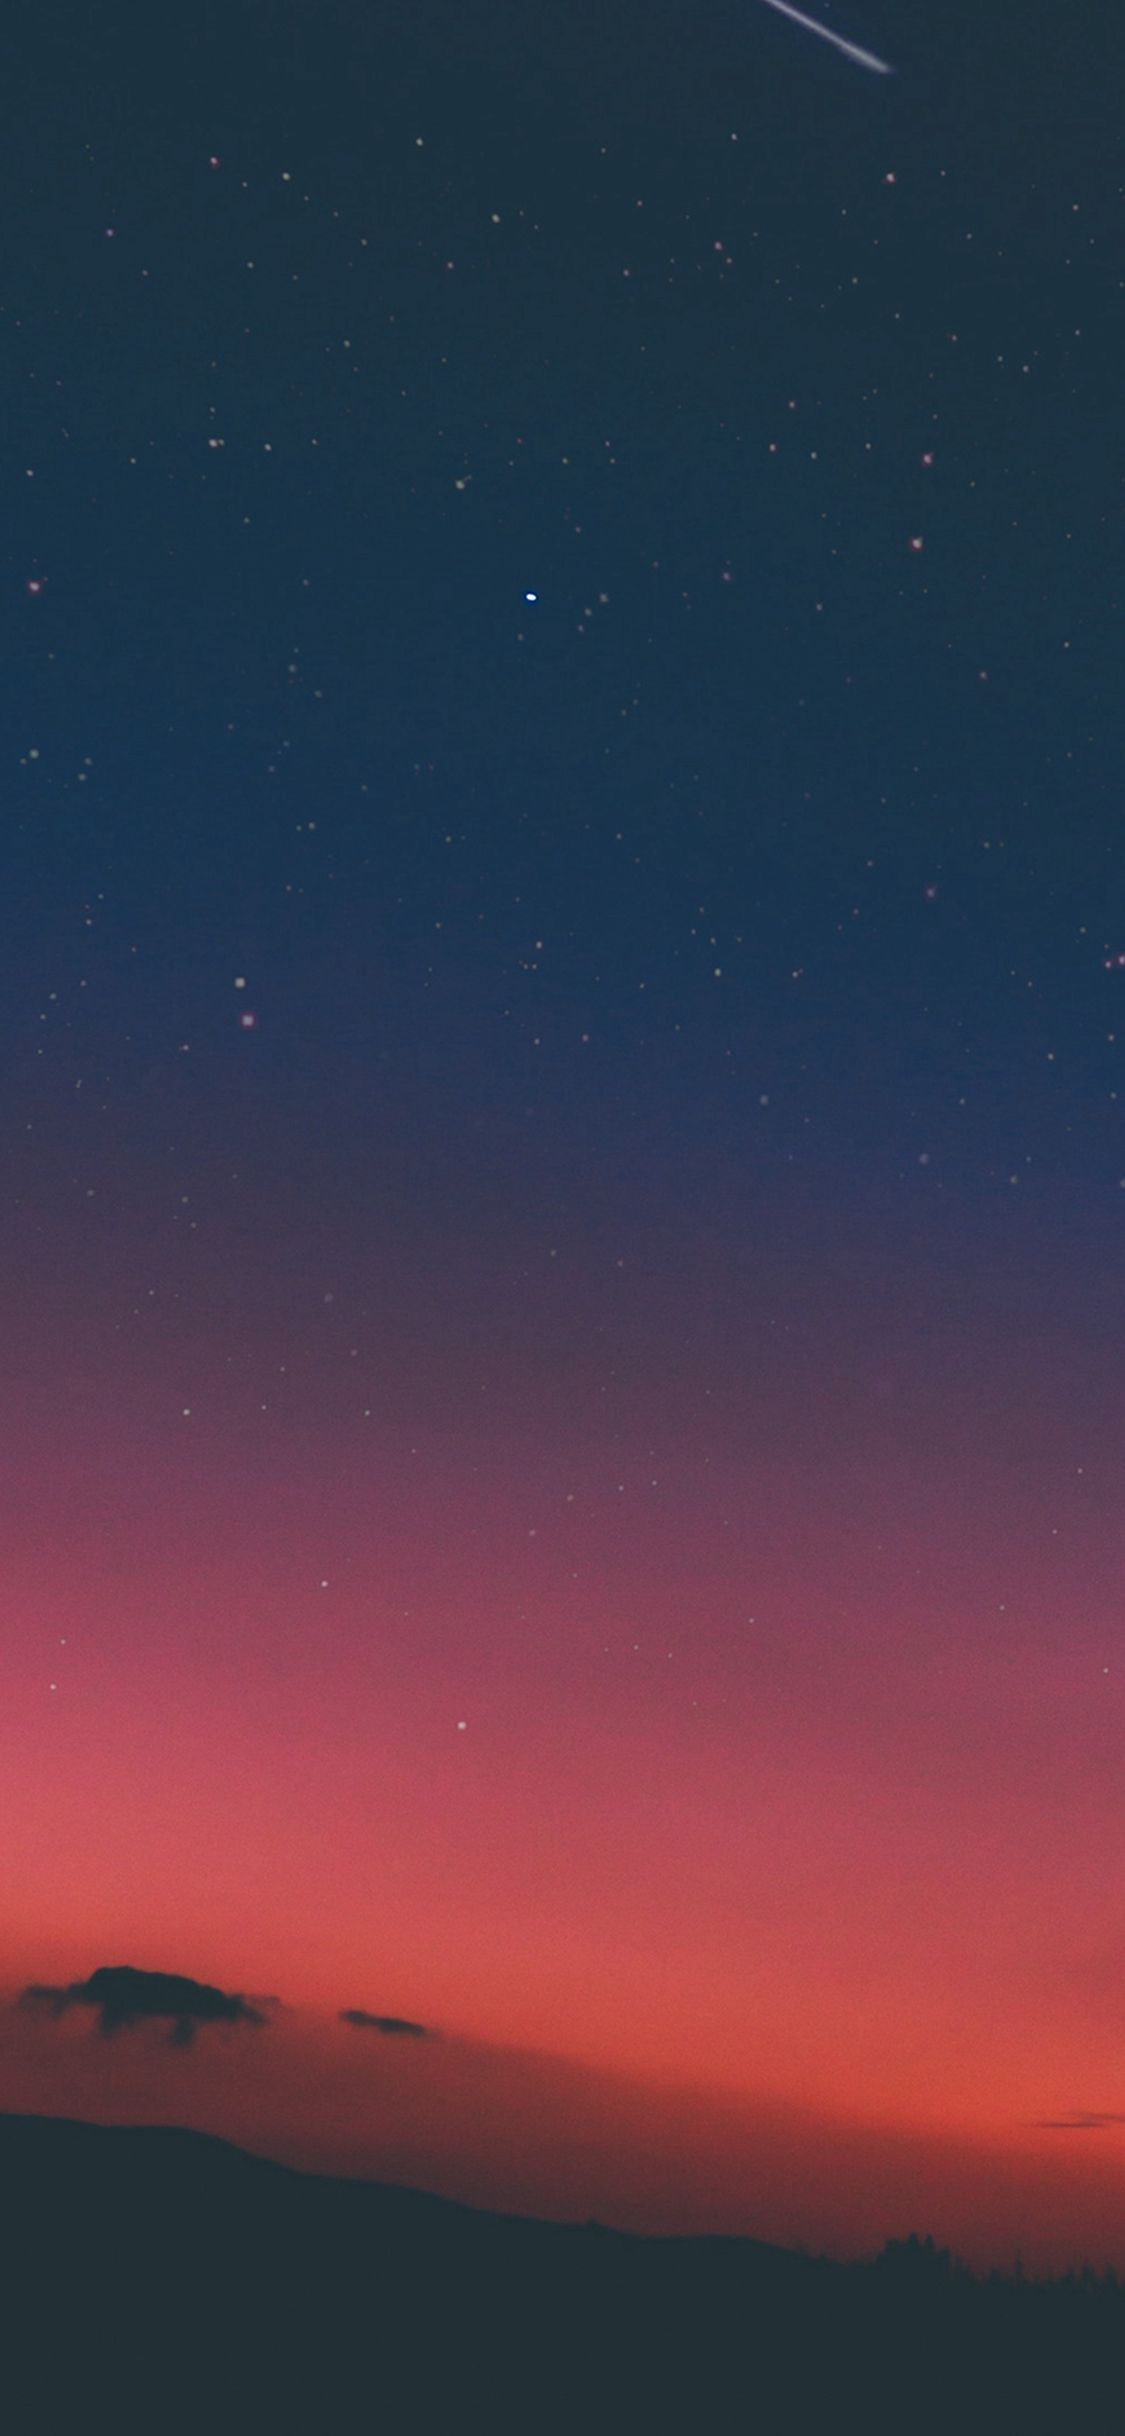 Aesthetic Iphone X Wallpapers Top Free Aesthetic Iphone X Backgrounds Wallpaperaccess